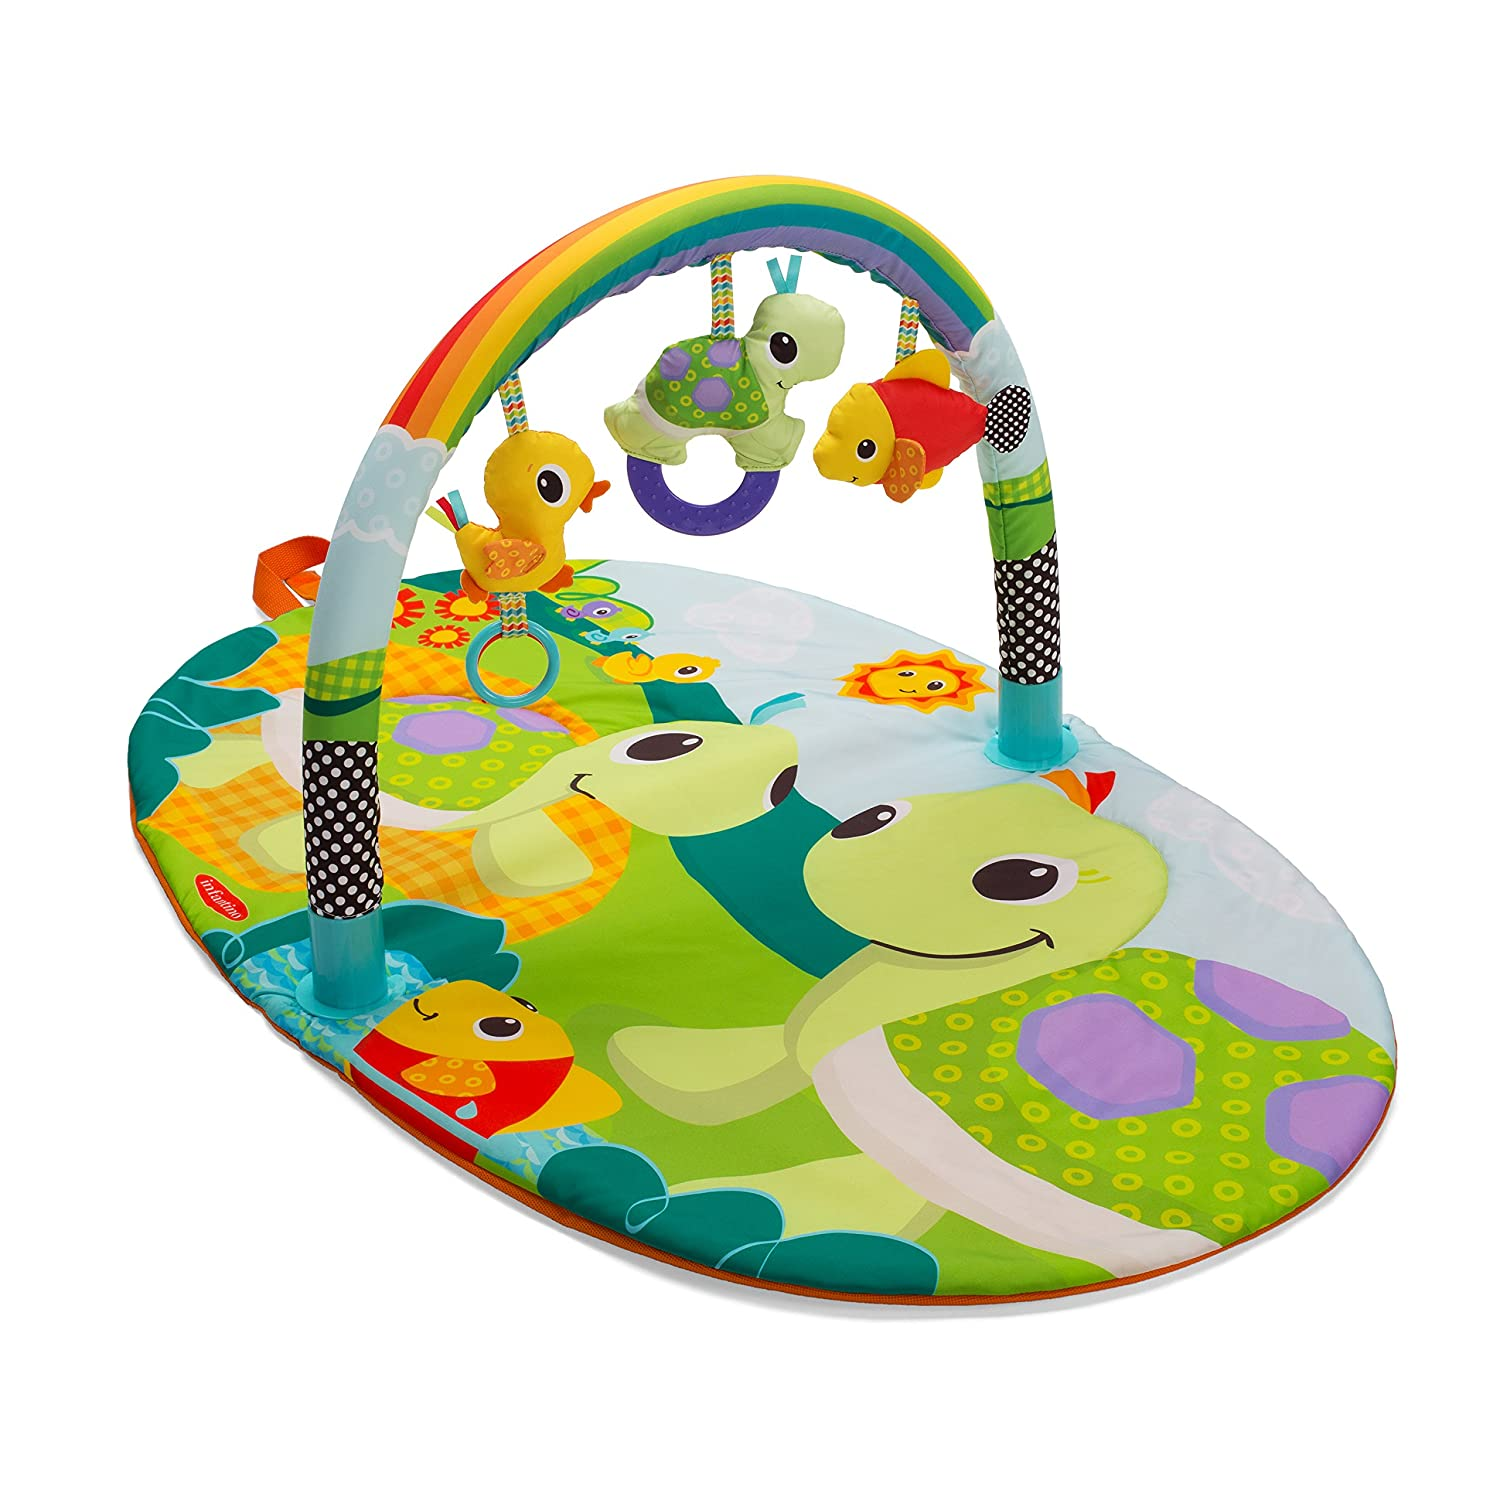 Infantino Topsy Turvy Explore and Store Activity Gym Turtles 216-029